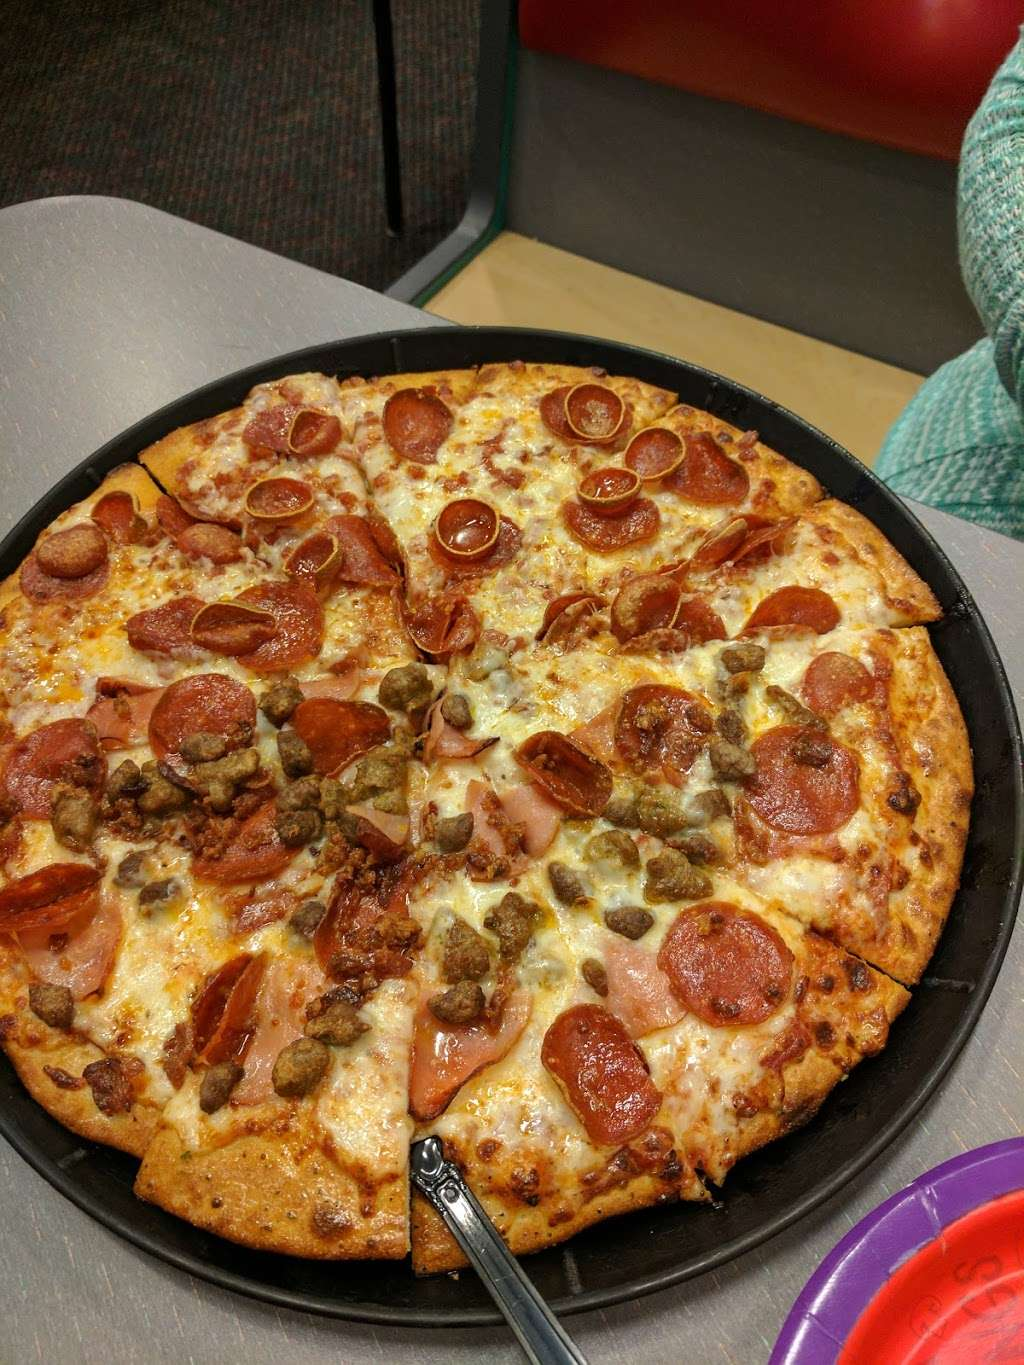 Chuck E. Cheeses - restaurant  | Photo 7 of 10 | Address: 191 N McKinley St, Corona, CA 92879, USA | Phone: (951) 279-9903